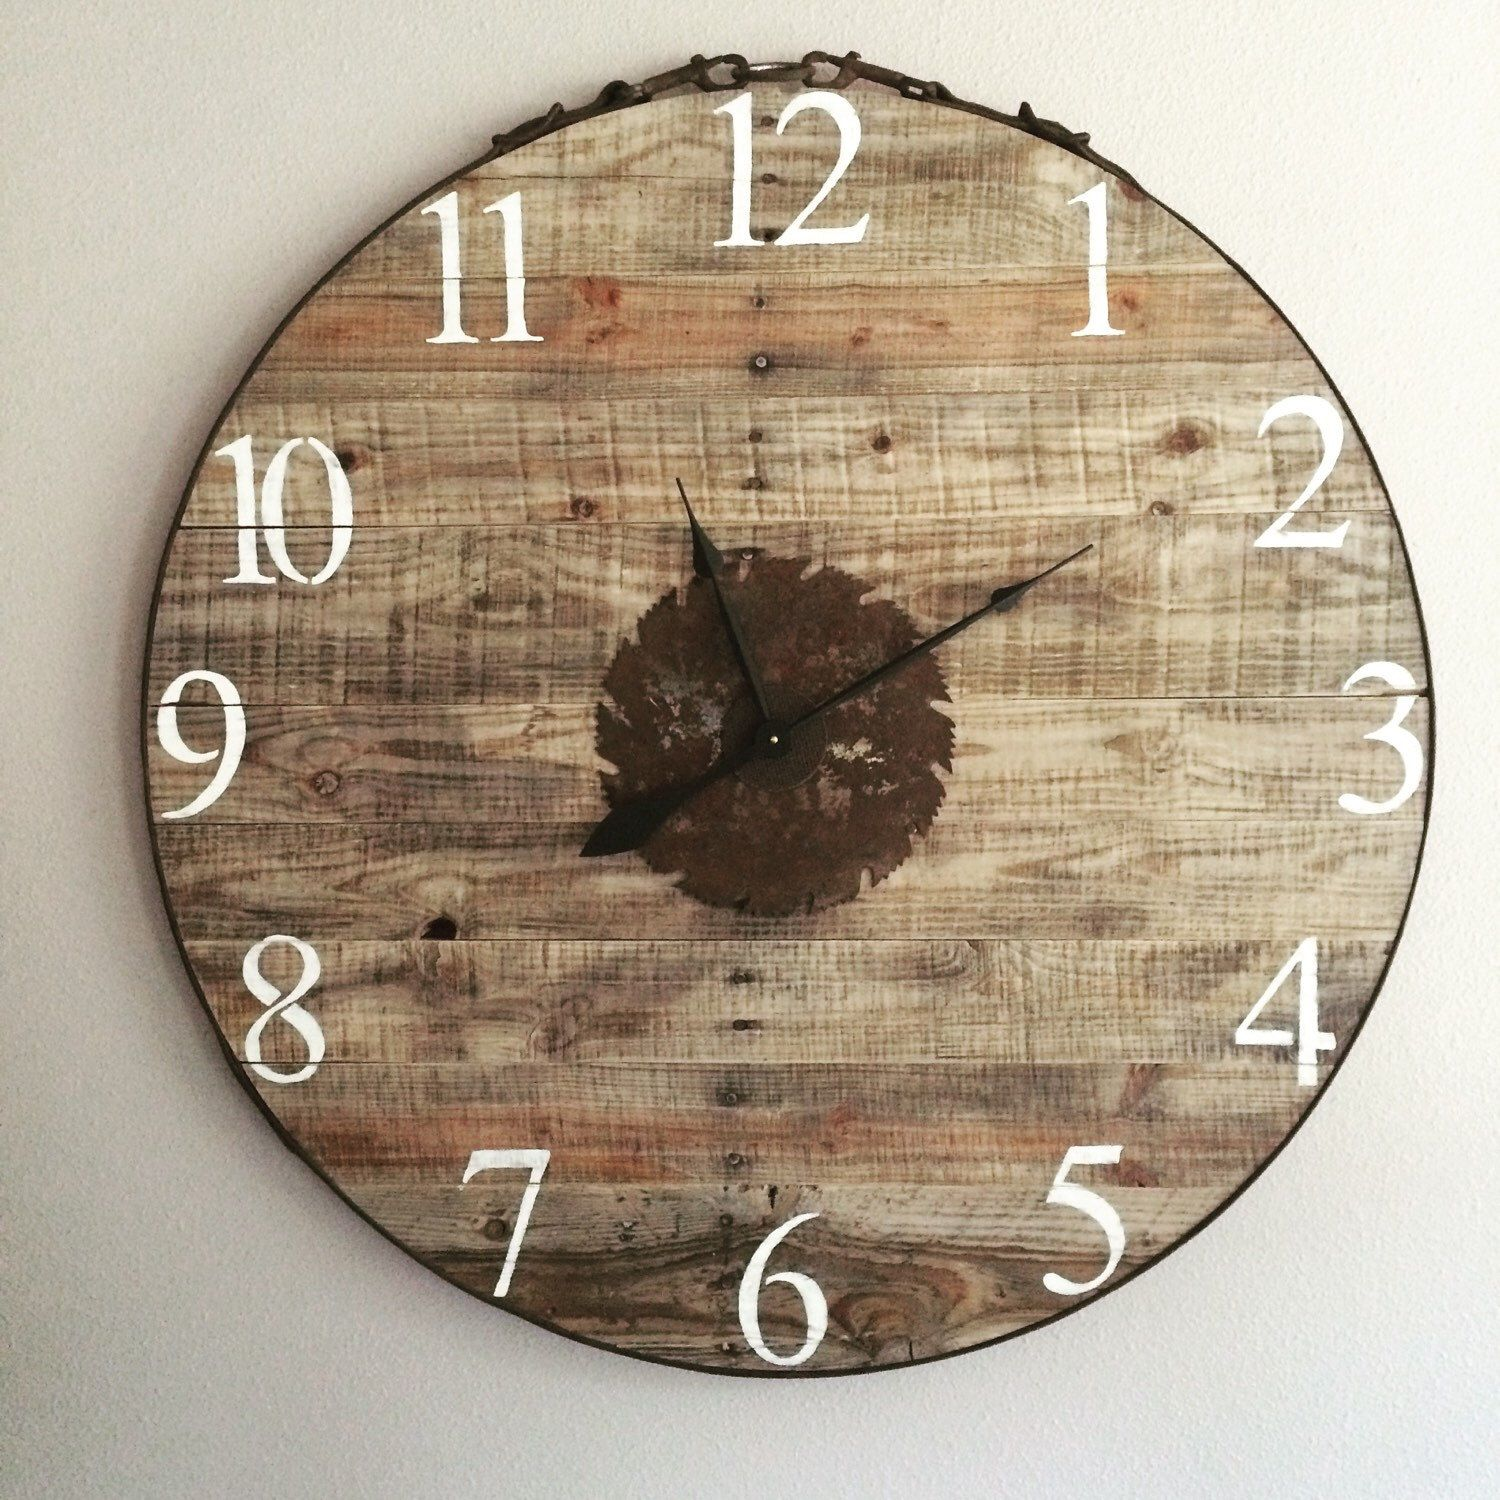 """35"""" Horse tack Pallet Clock by PenneCarter on Etsy https://www.etsy.com/listing/255147361/35-horse-tack-pallet-clock"""